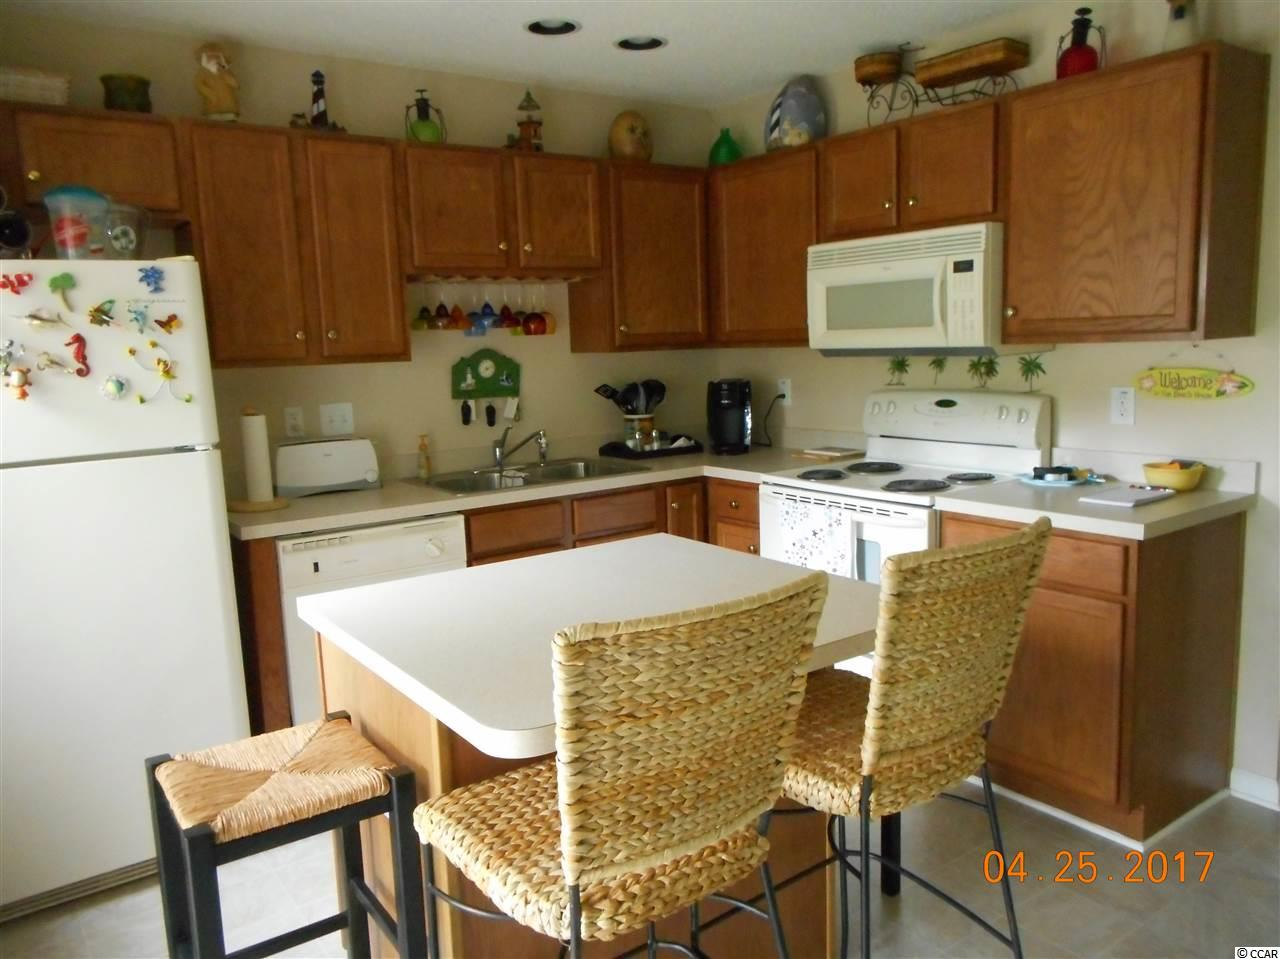 PARKVIEW SUBDIVISION - 17TH AVE. condo at 1013 Pinwheel Loop for sale. 1709494